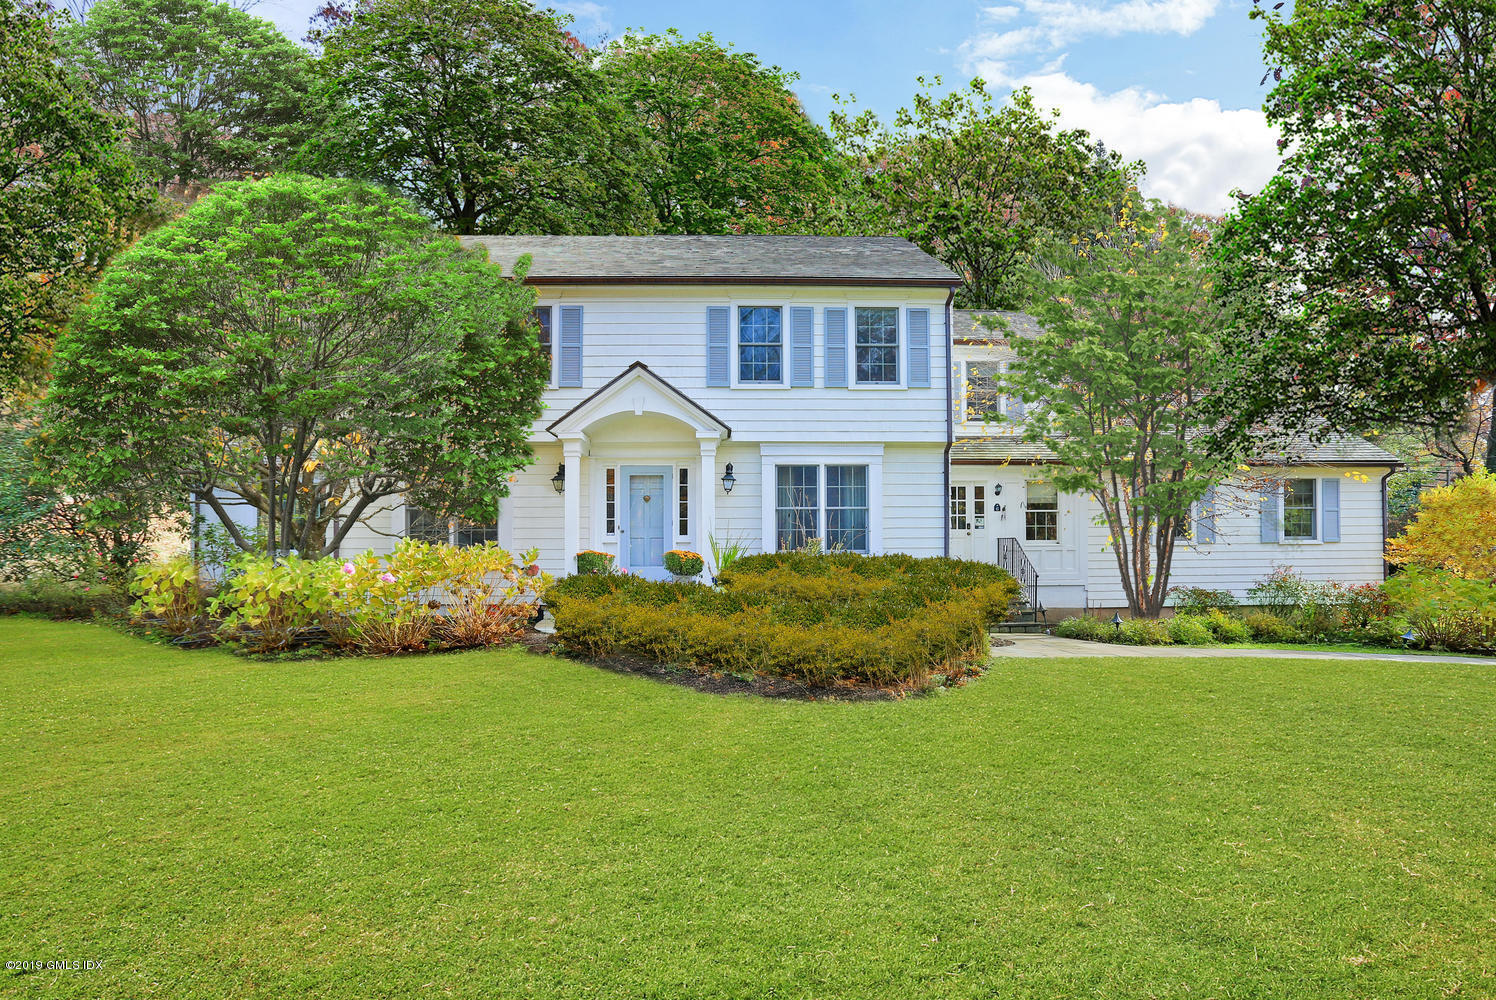 6 Wyngate Road,Greenwich,Connecticut 06830,5 Bedrooms Bedrooms,3 BathroomsBathrooms,Single family,Wyngate,105817